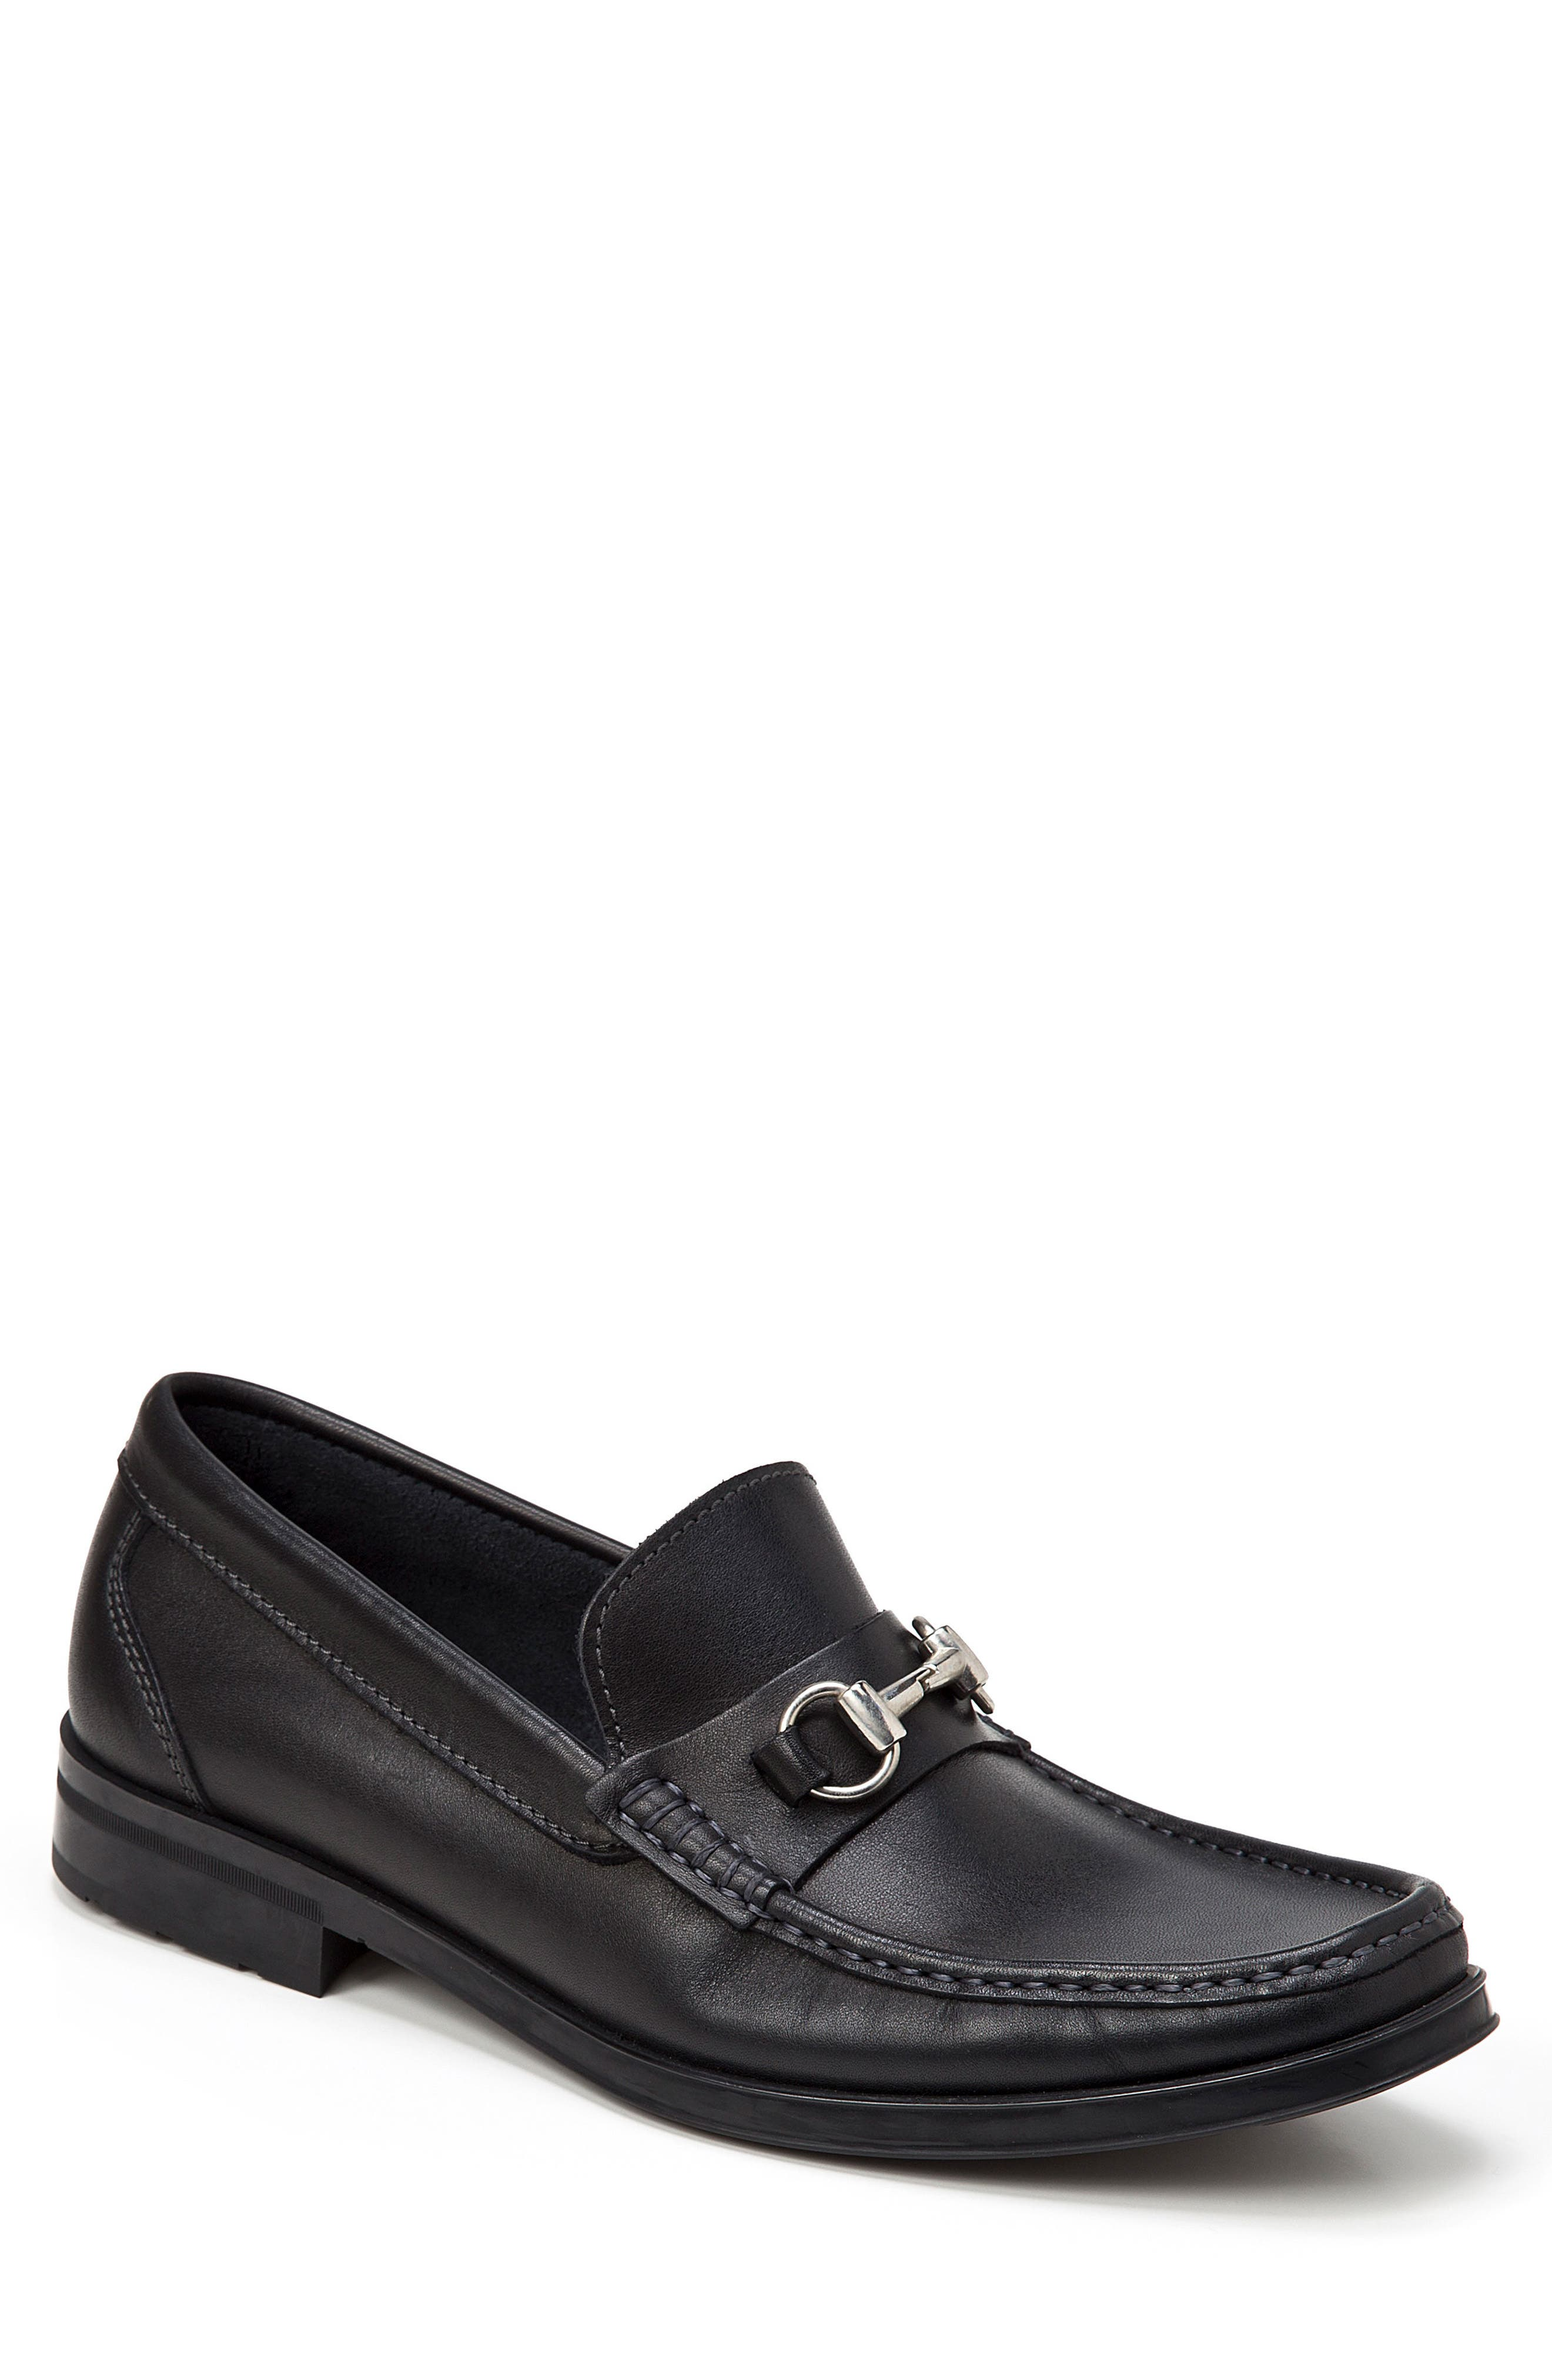 Ernesto Bit Loafer,                             Main thumbnail 1, color,                             001